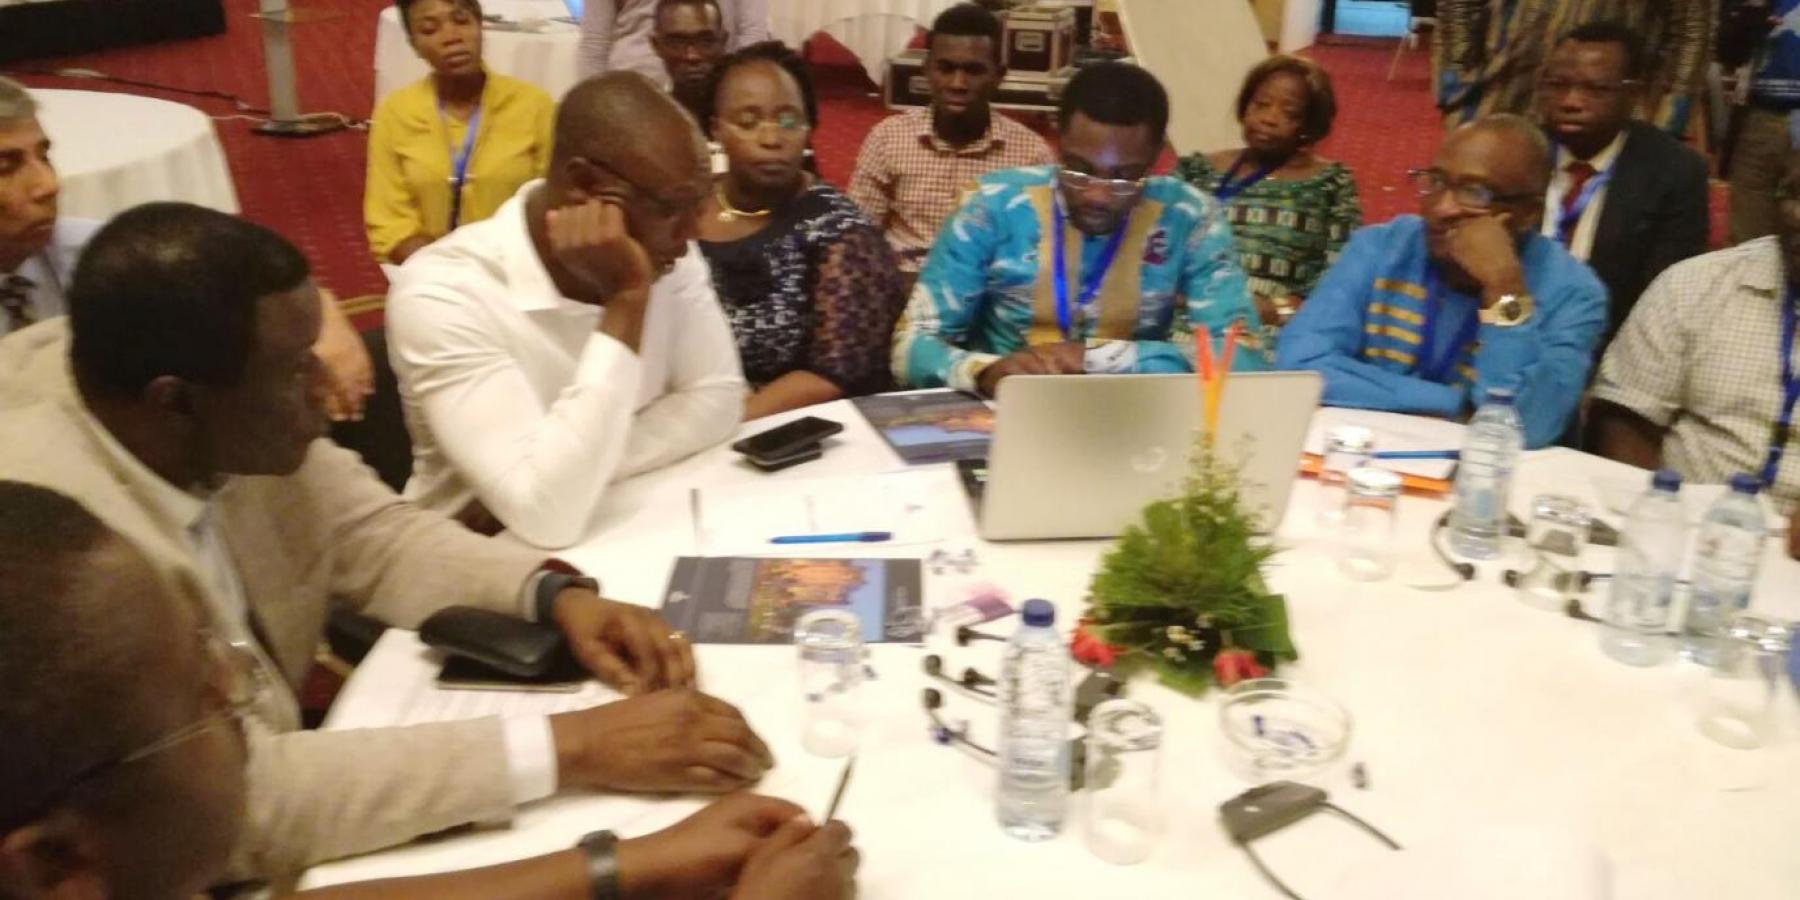 Prof. Jean Claude Mbanya, Tih Ntiabang, Ferdinant Sonyuy Mbiydzenyuy and other advocates discussing the formation of a Cameroonian NCD Alliance